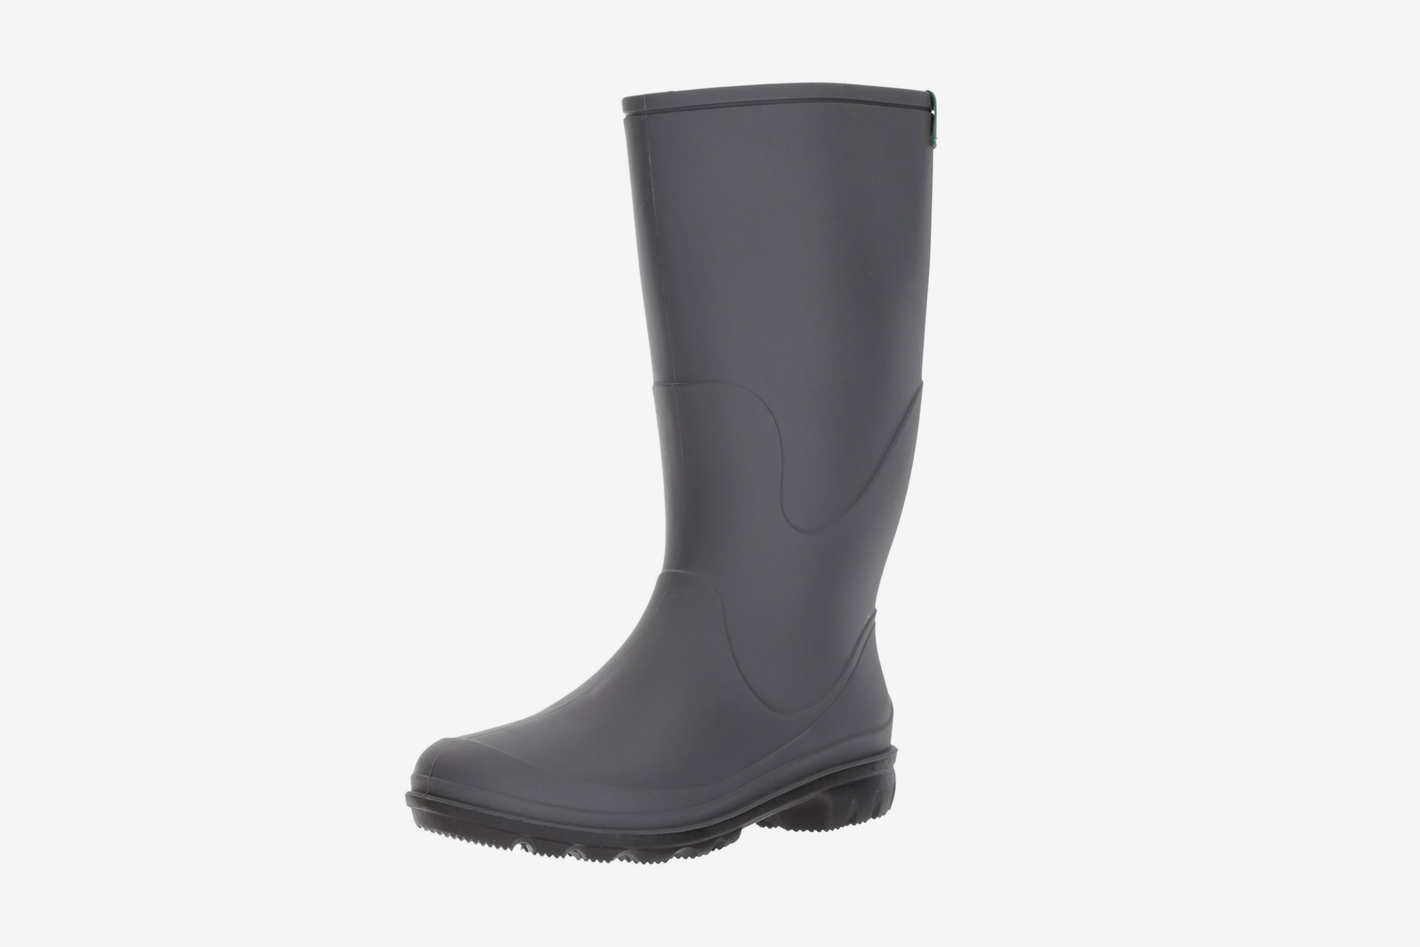 90a7b4183dd 7 Pairs of Rain Boots for Wide Calves